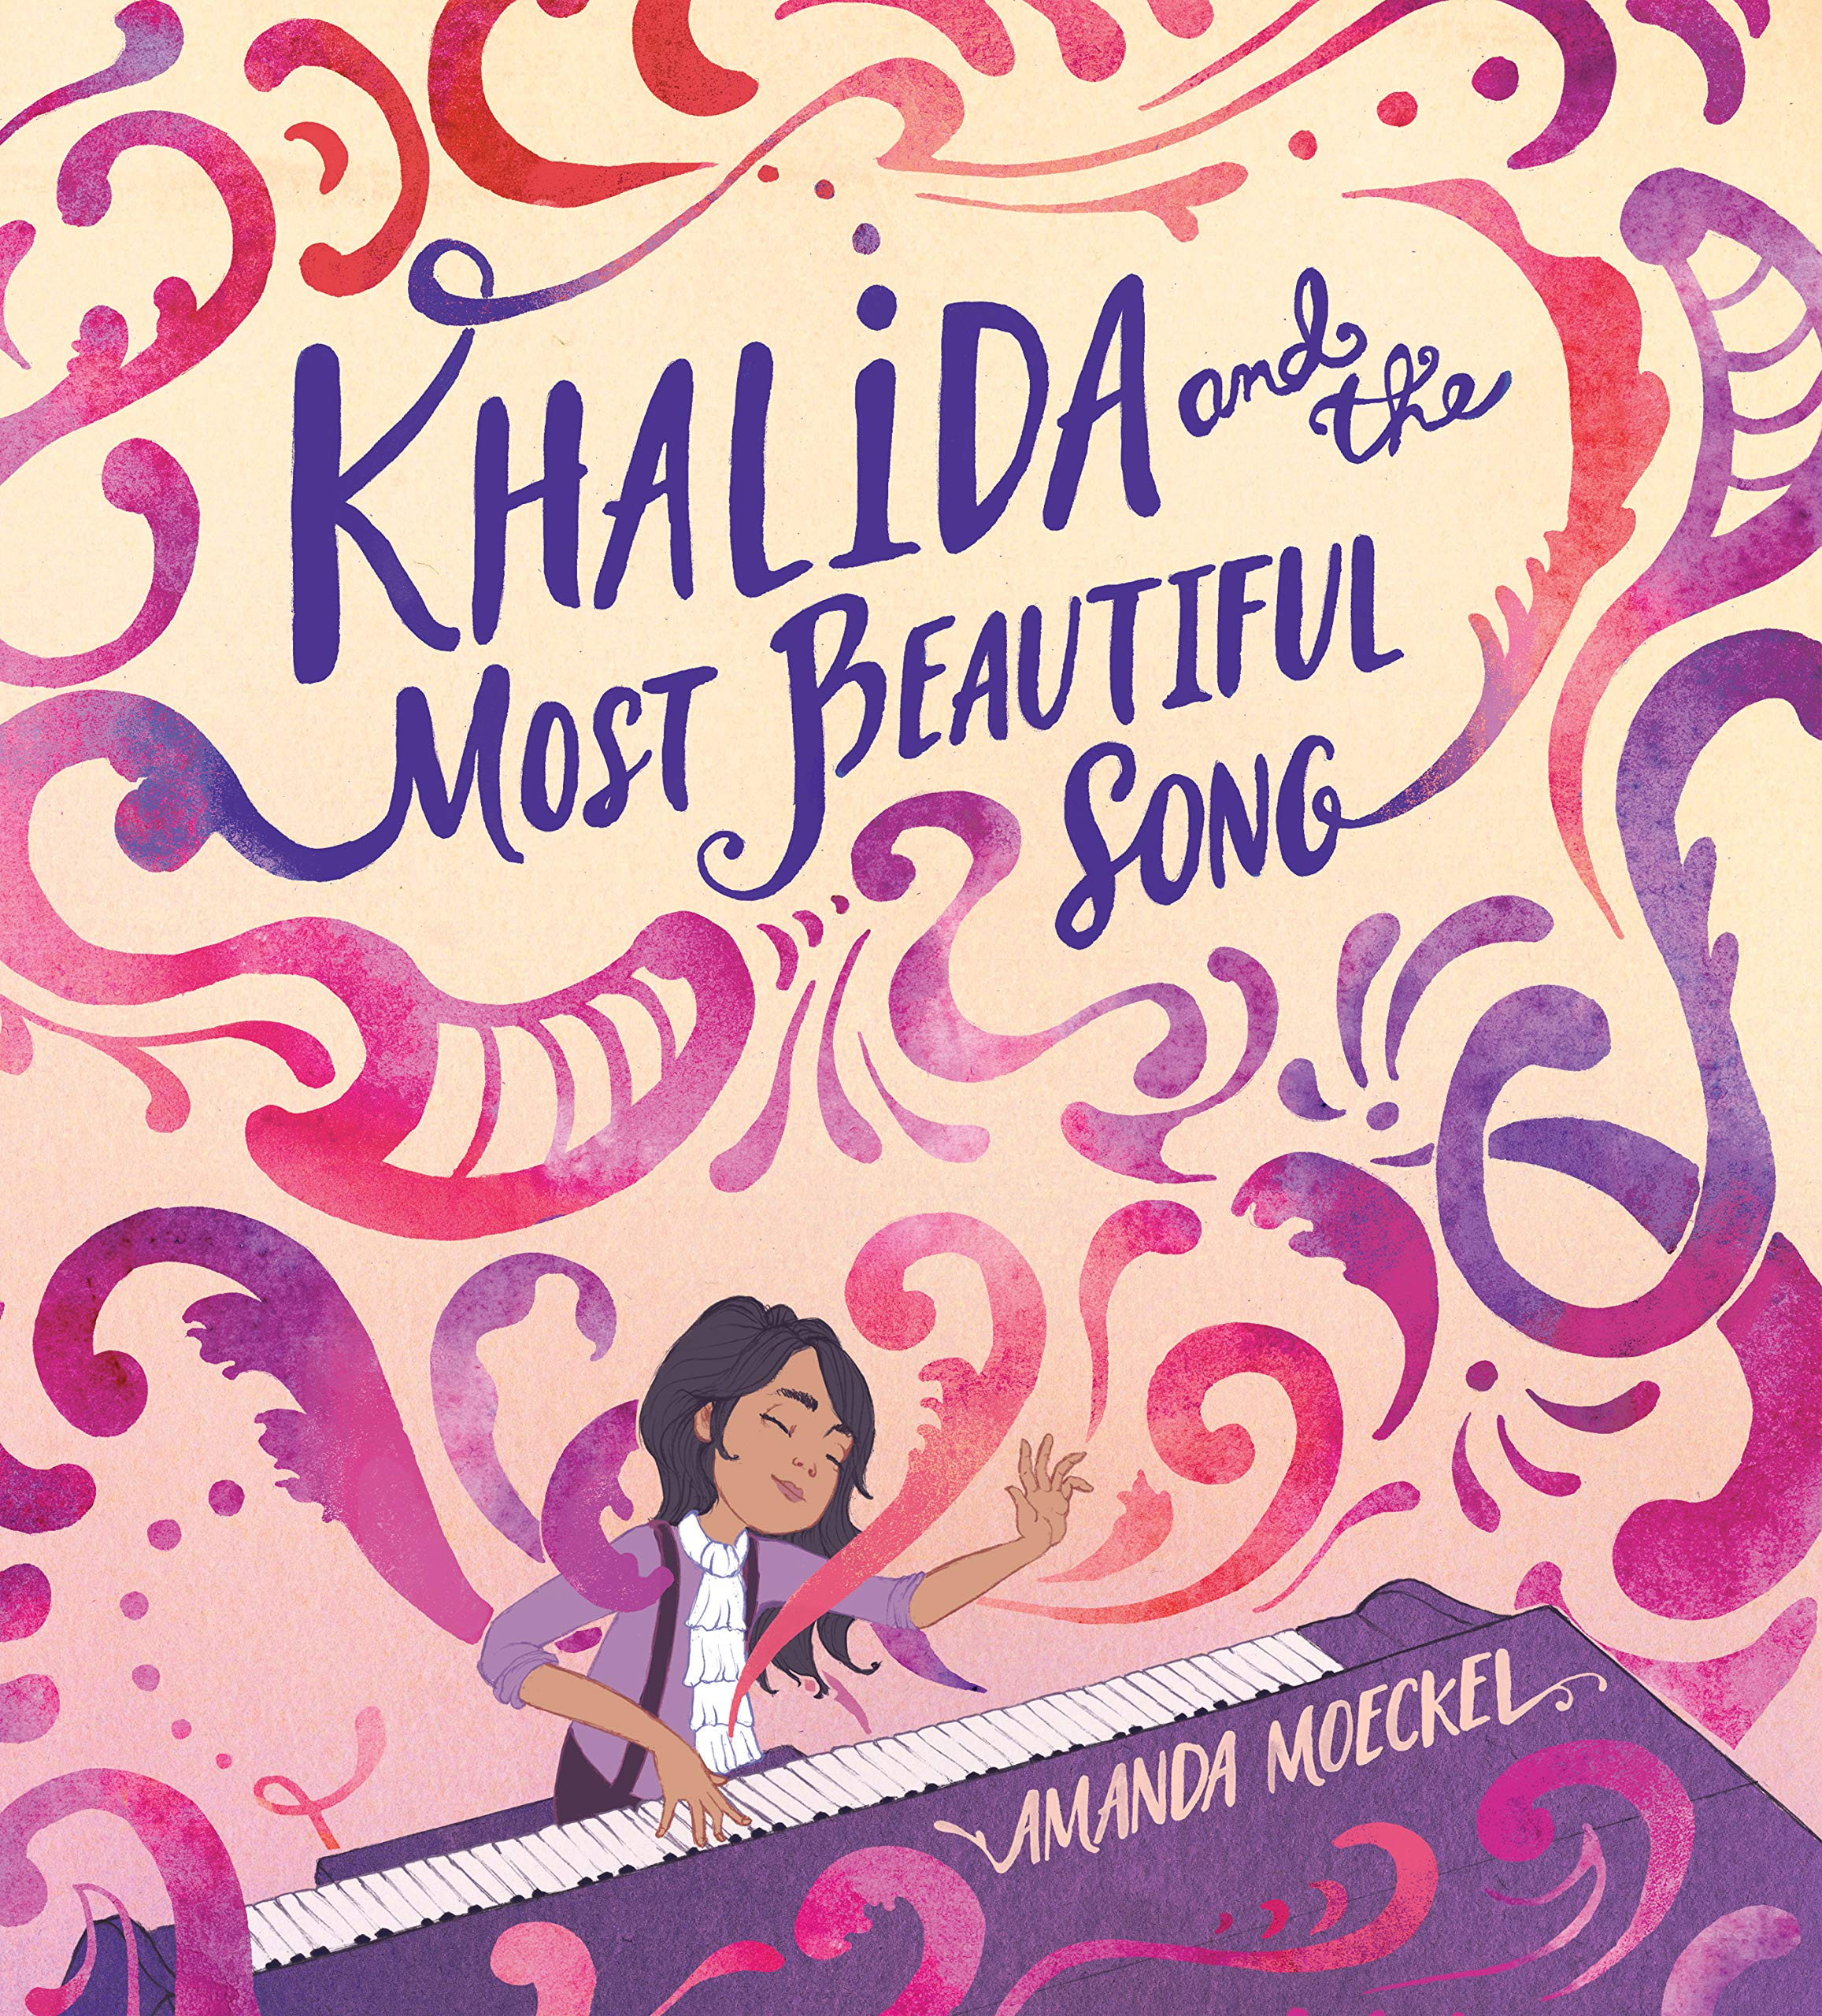 Picture Books that celebrate being yourself  - khalida and the most beautiful song.jpg